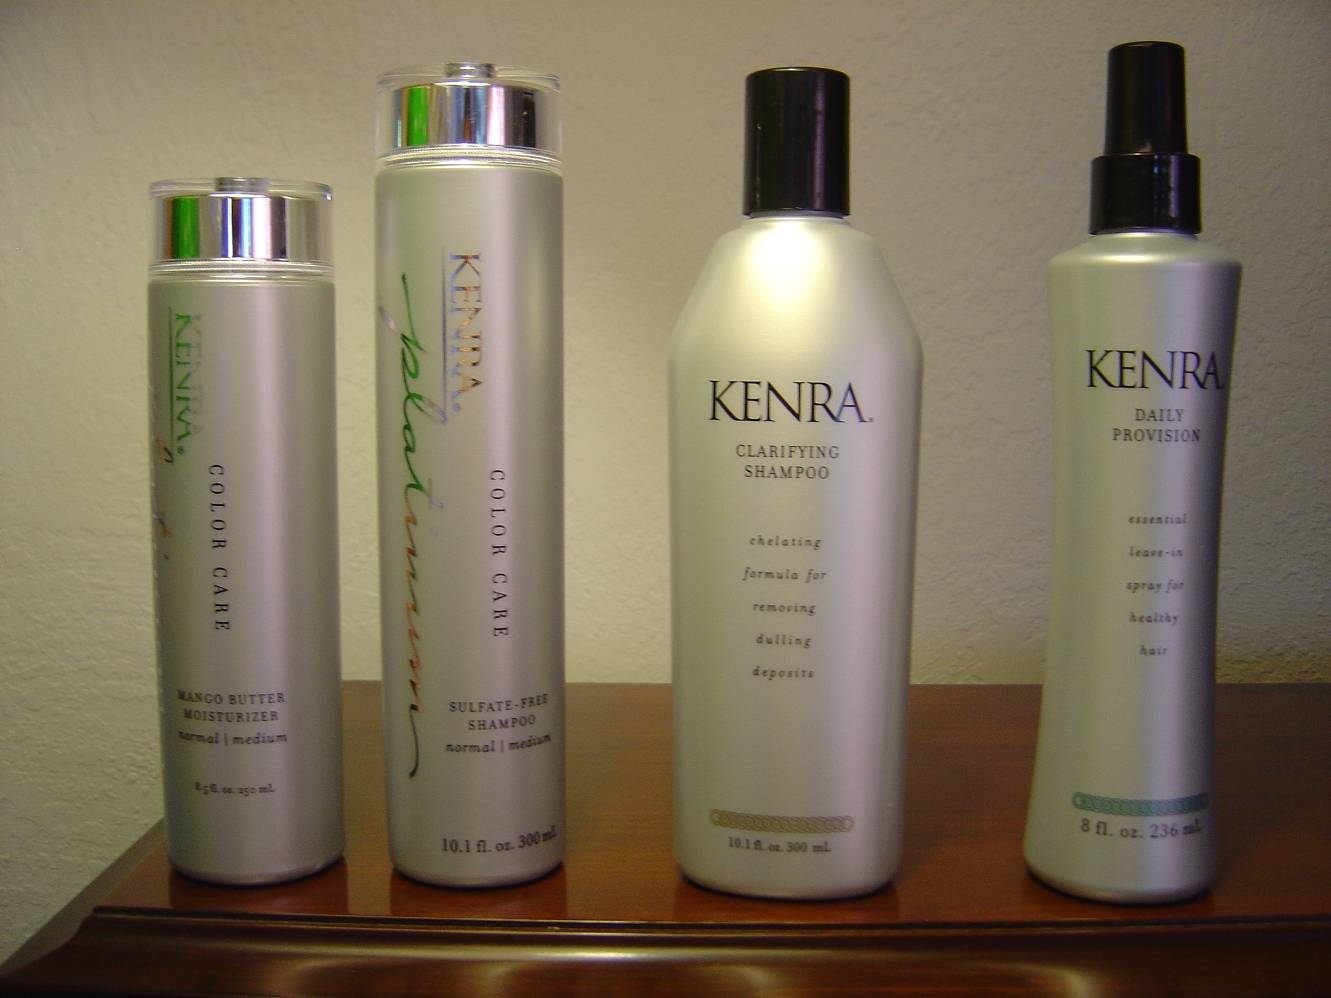 Kenra Professional Shampoos and Conditioners Review-Part